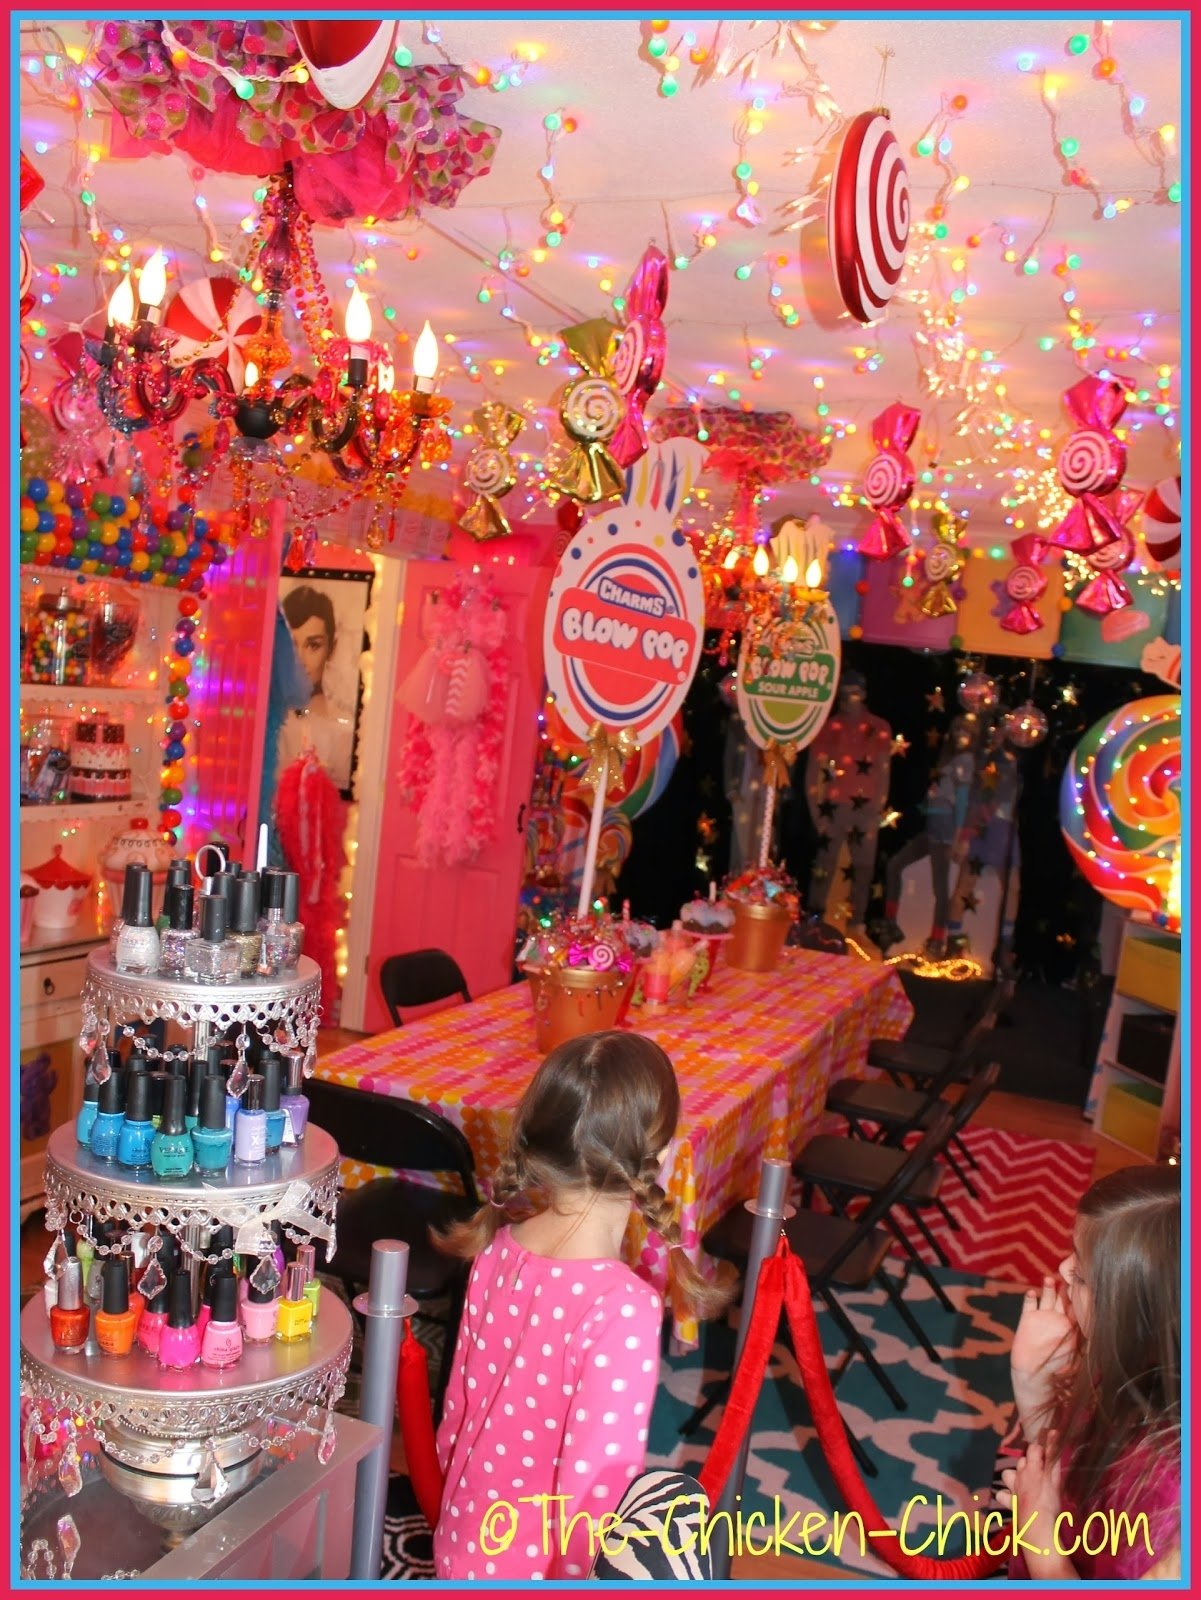 10 Unique Birthday Party Ideas For 11 Year Old Girls